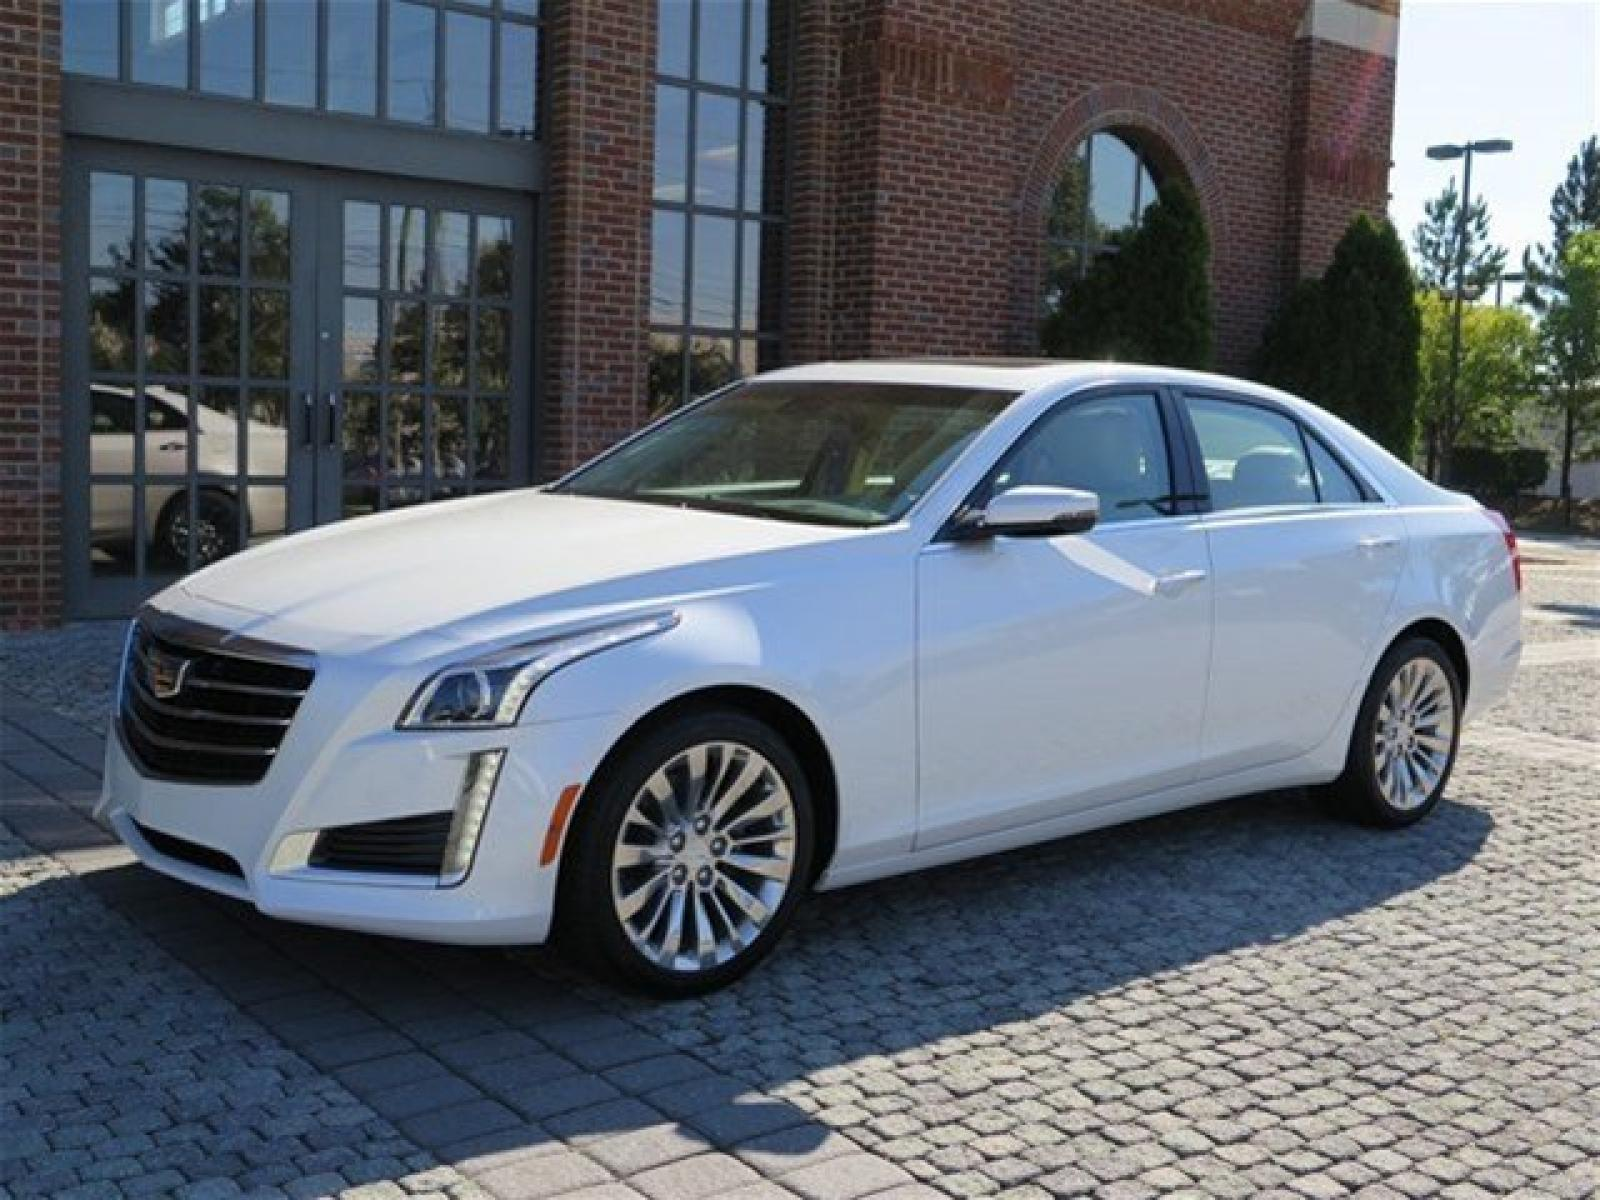 2015 cadillac cts information and photos zombiedrive. Black Bedroom Furniture Sets. Home Design Ideas